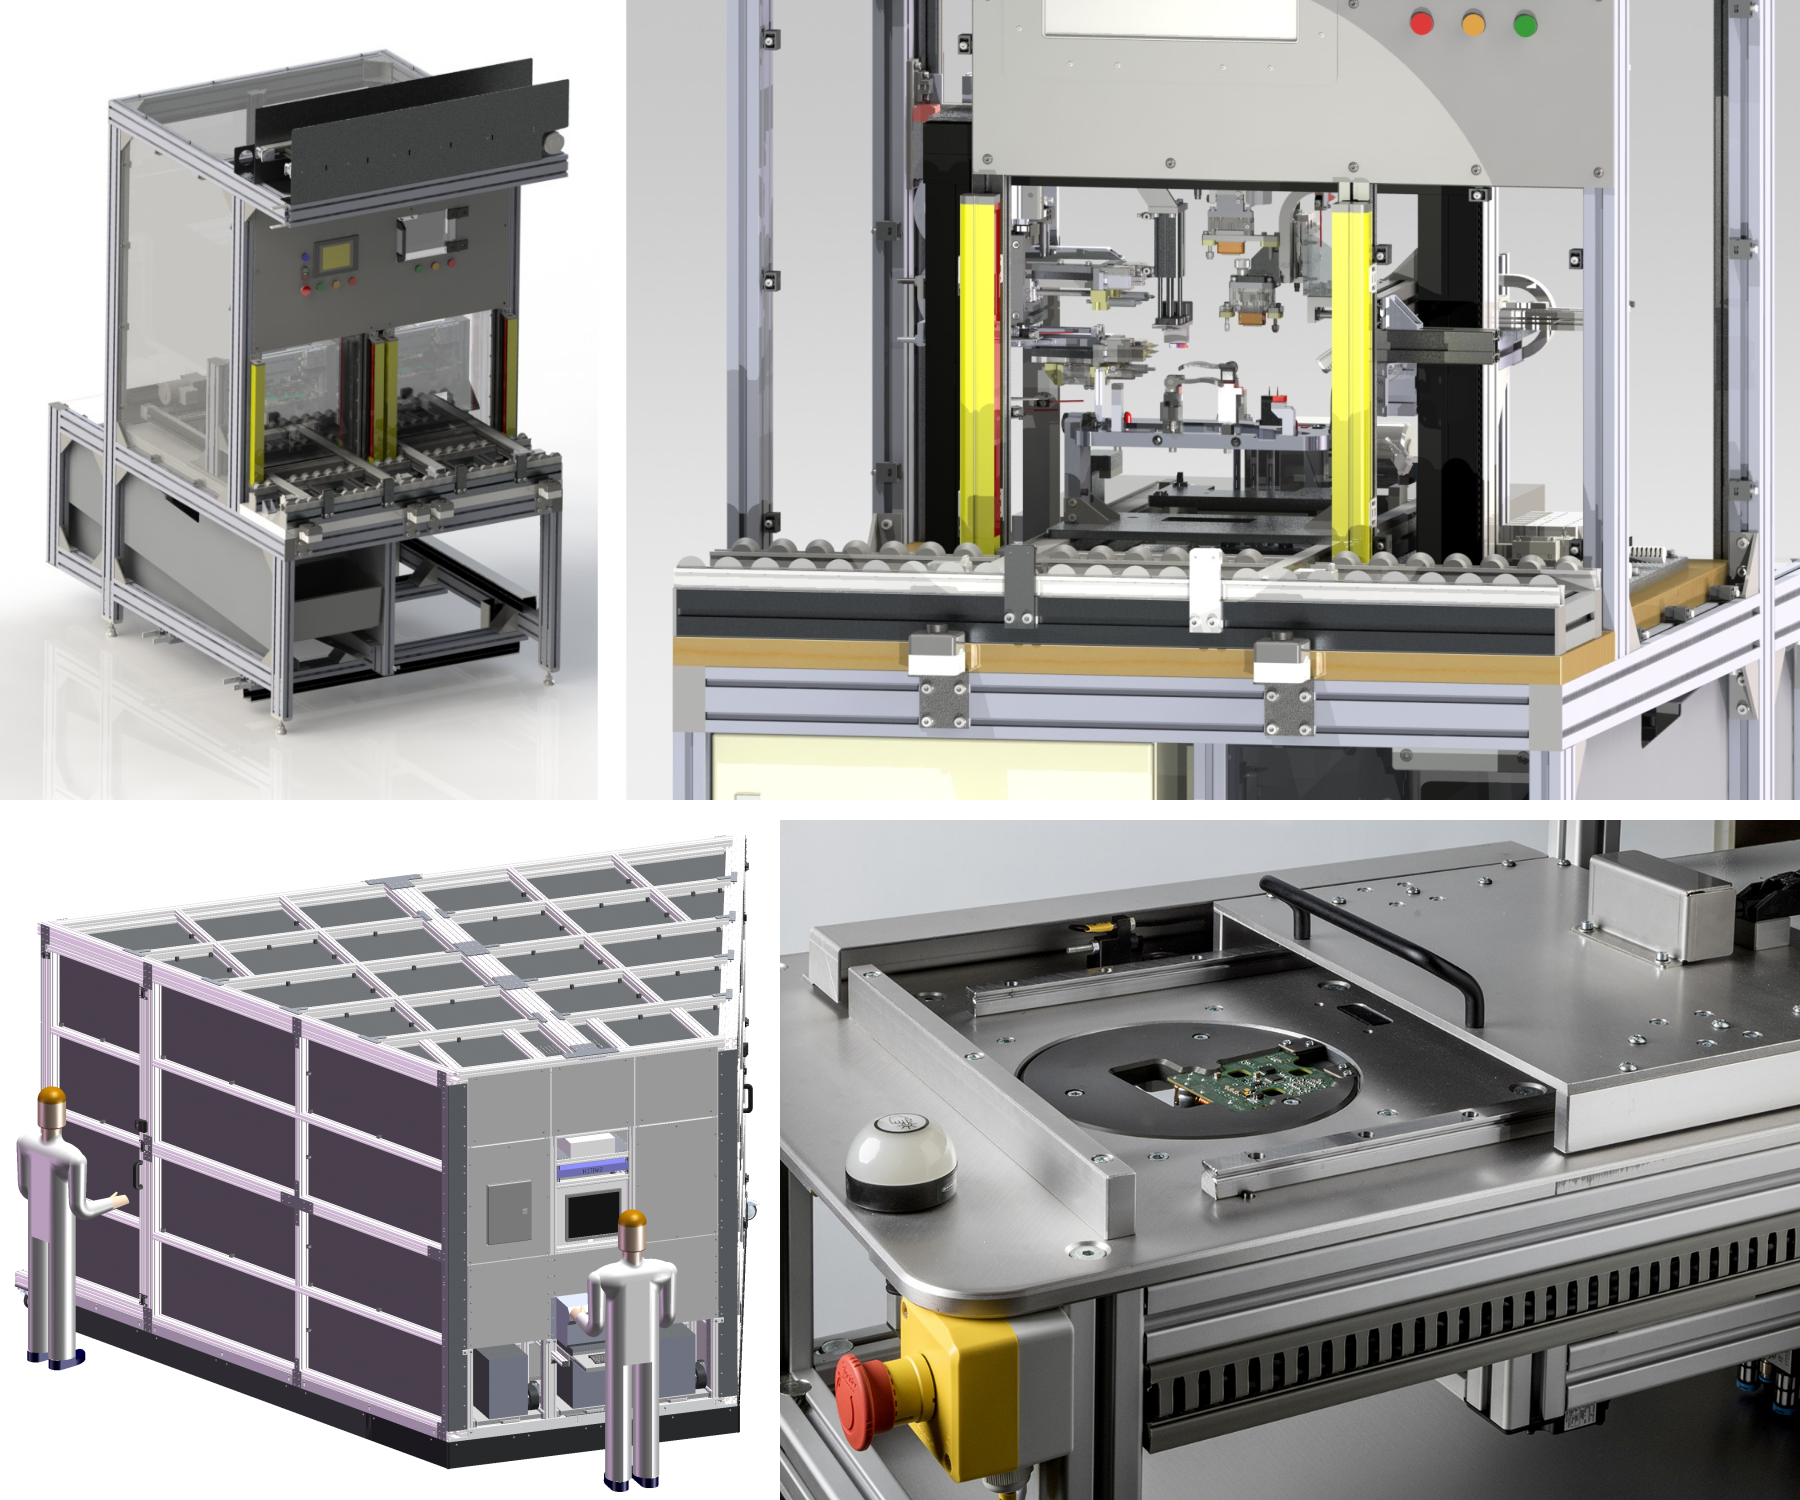 Automation Solution Econ Engineering Laser Cutting Machine For Printed Circuit Boards With Inline Measuring In Line Inspection And Testing Elevates The Product Quality To A Continued High Level Of Standard At We Are Able Cover